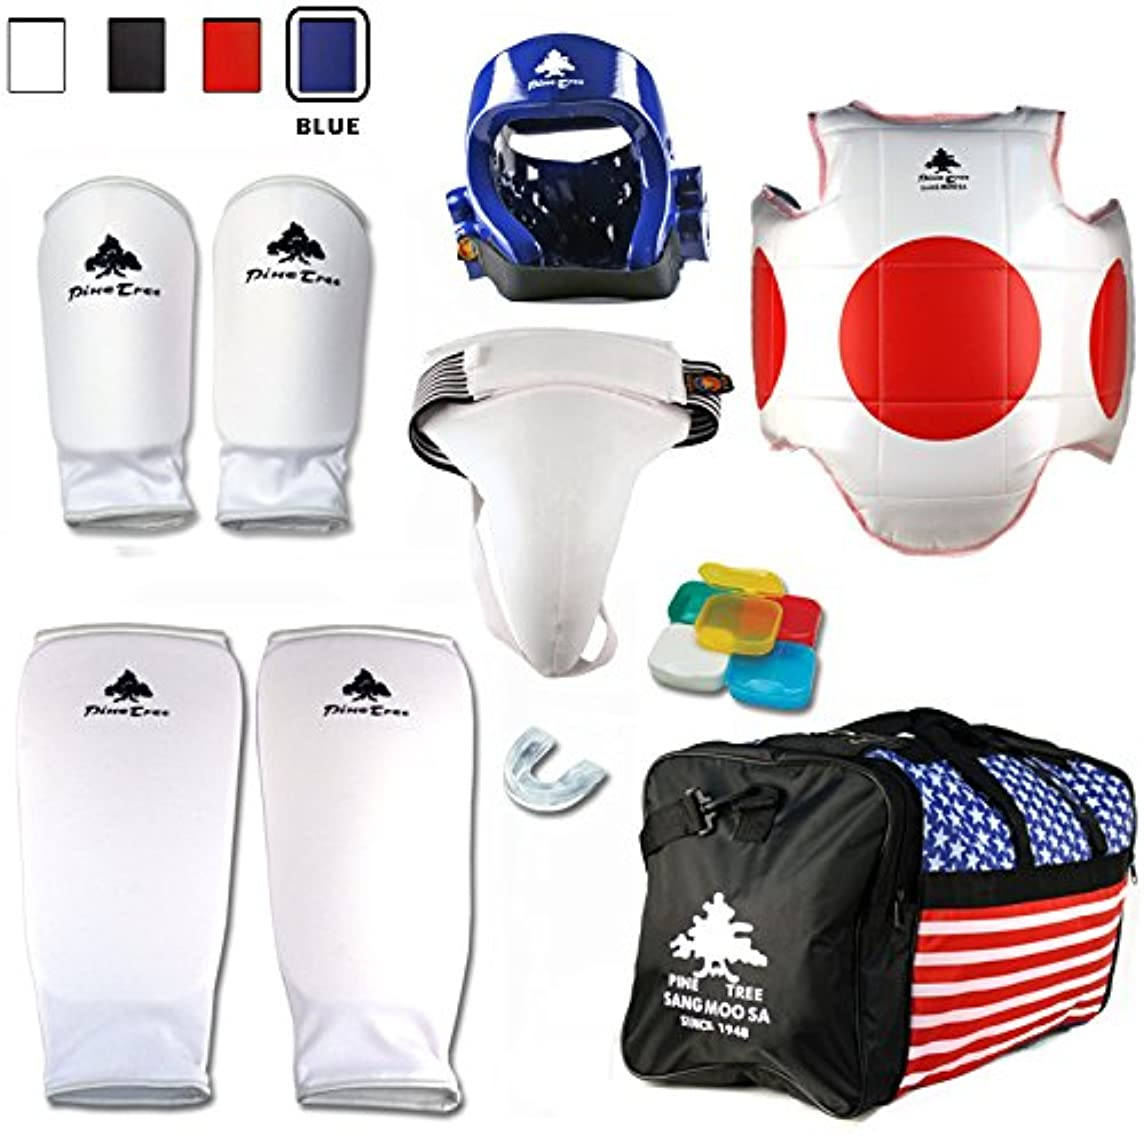 Pine Tree Complete Cloth Martial Arts Sparring Gear Set with Bag, Forearm/Shin, Groin